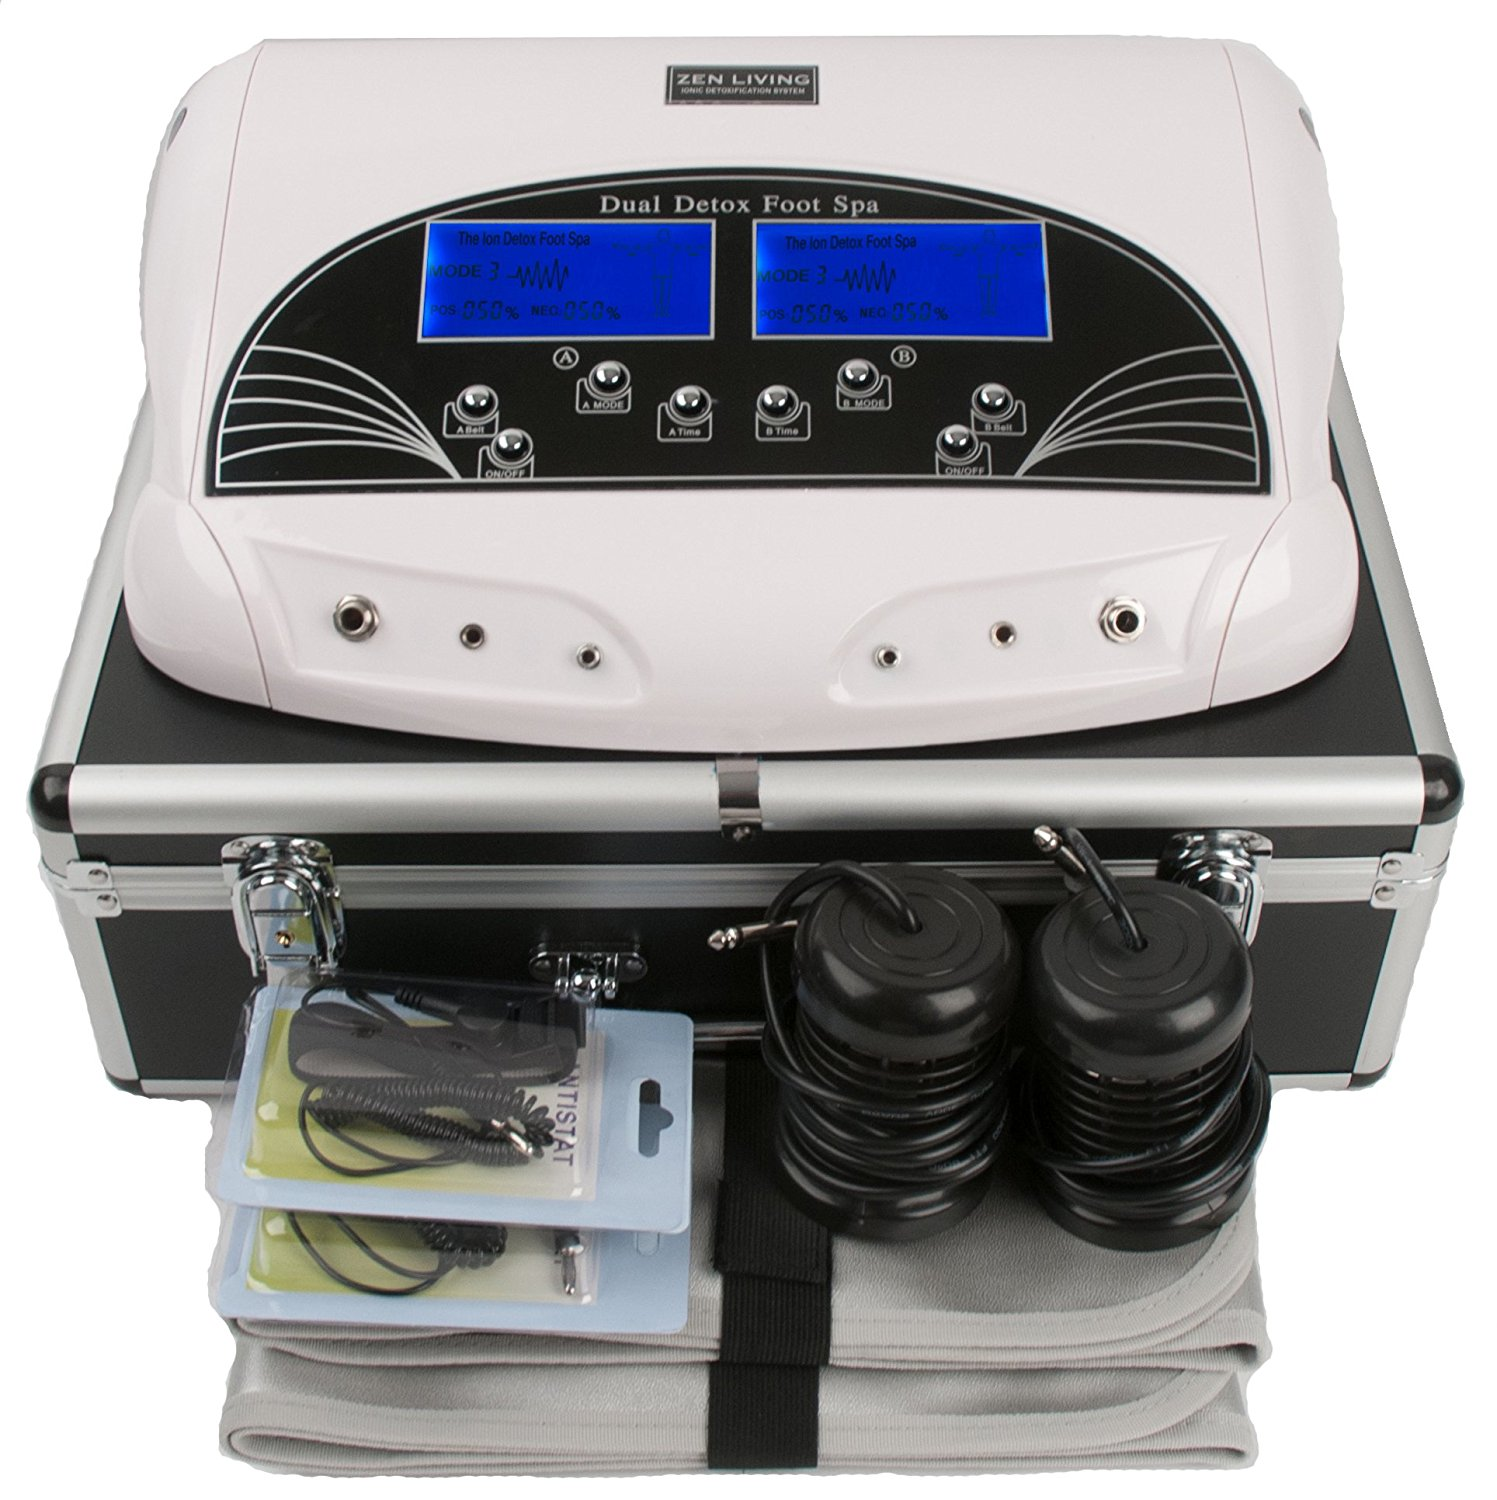 uses of foot spa machine Review: Is it Worth It?